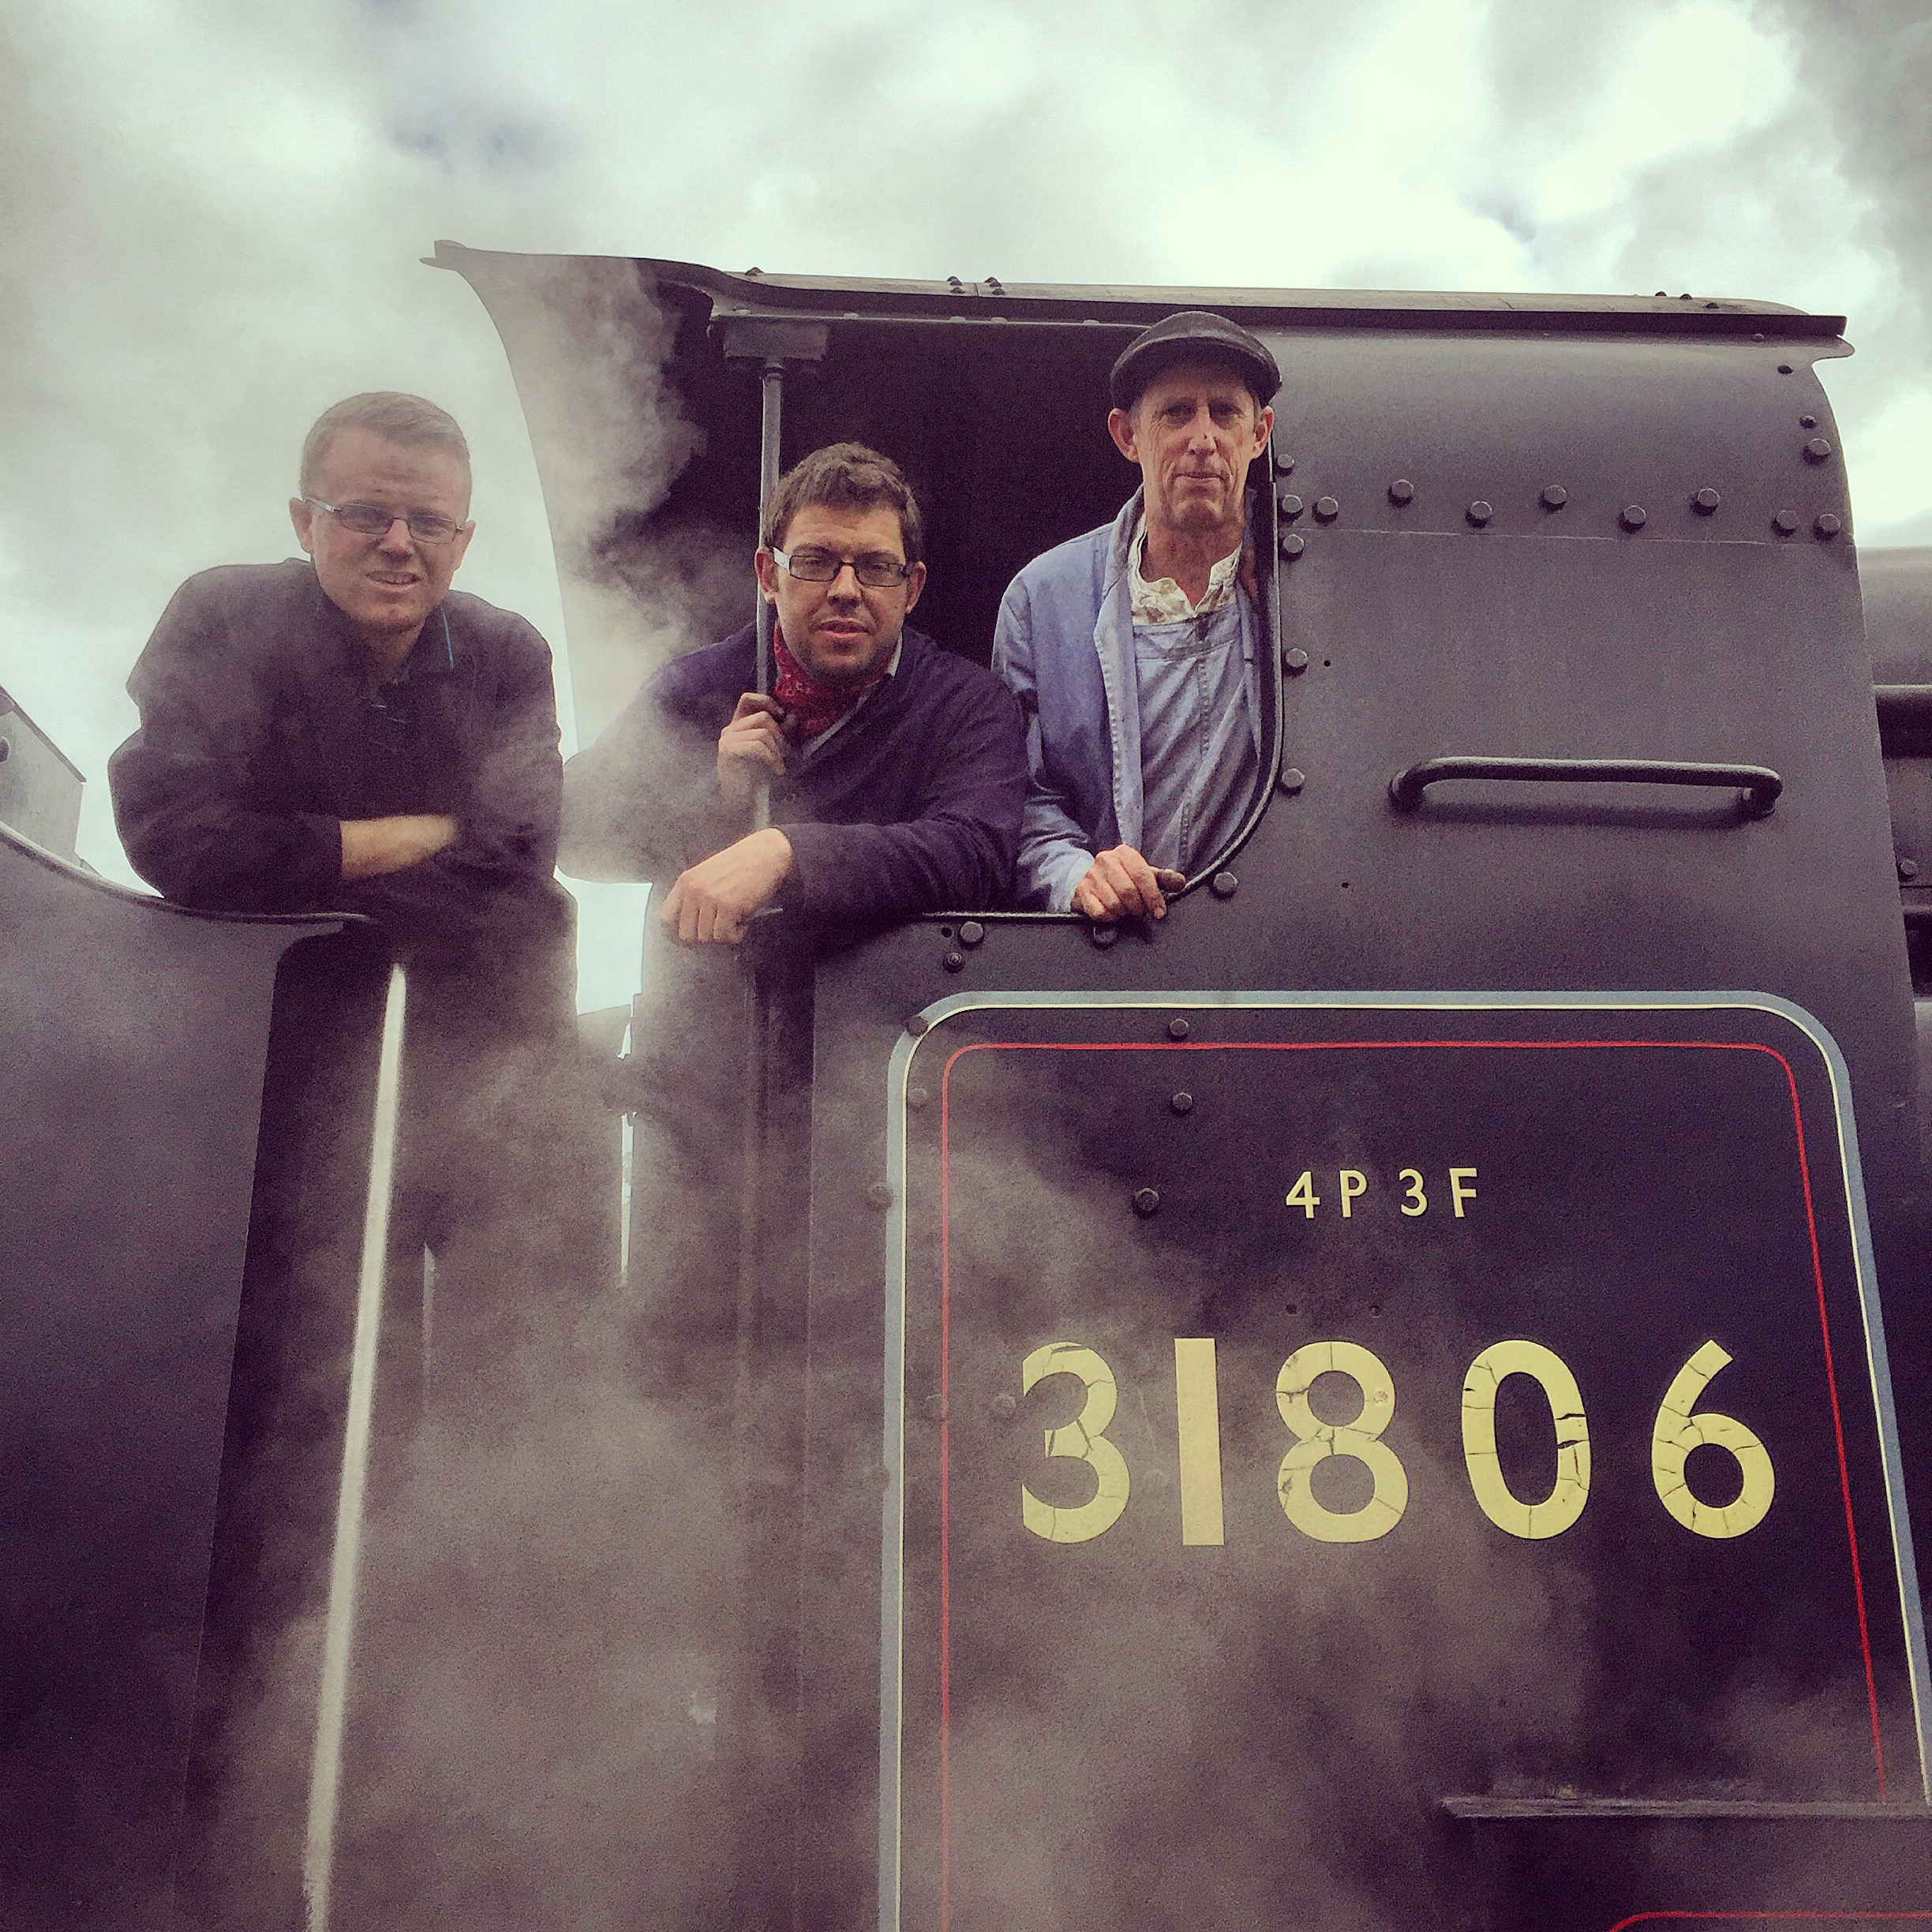 Owners Representative Jack Haynes, Fireman Mark O'Brien and Driver Simon Long at Goathland on 26/09/15.